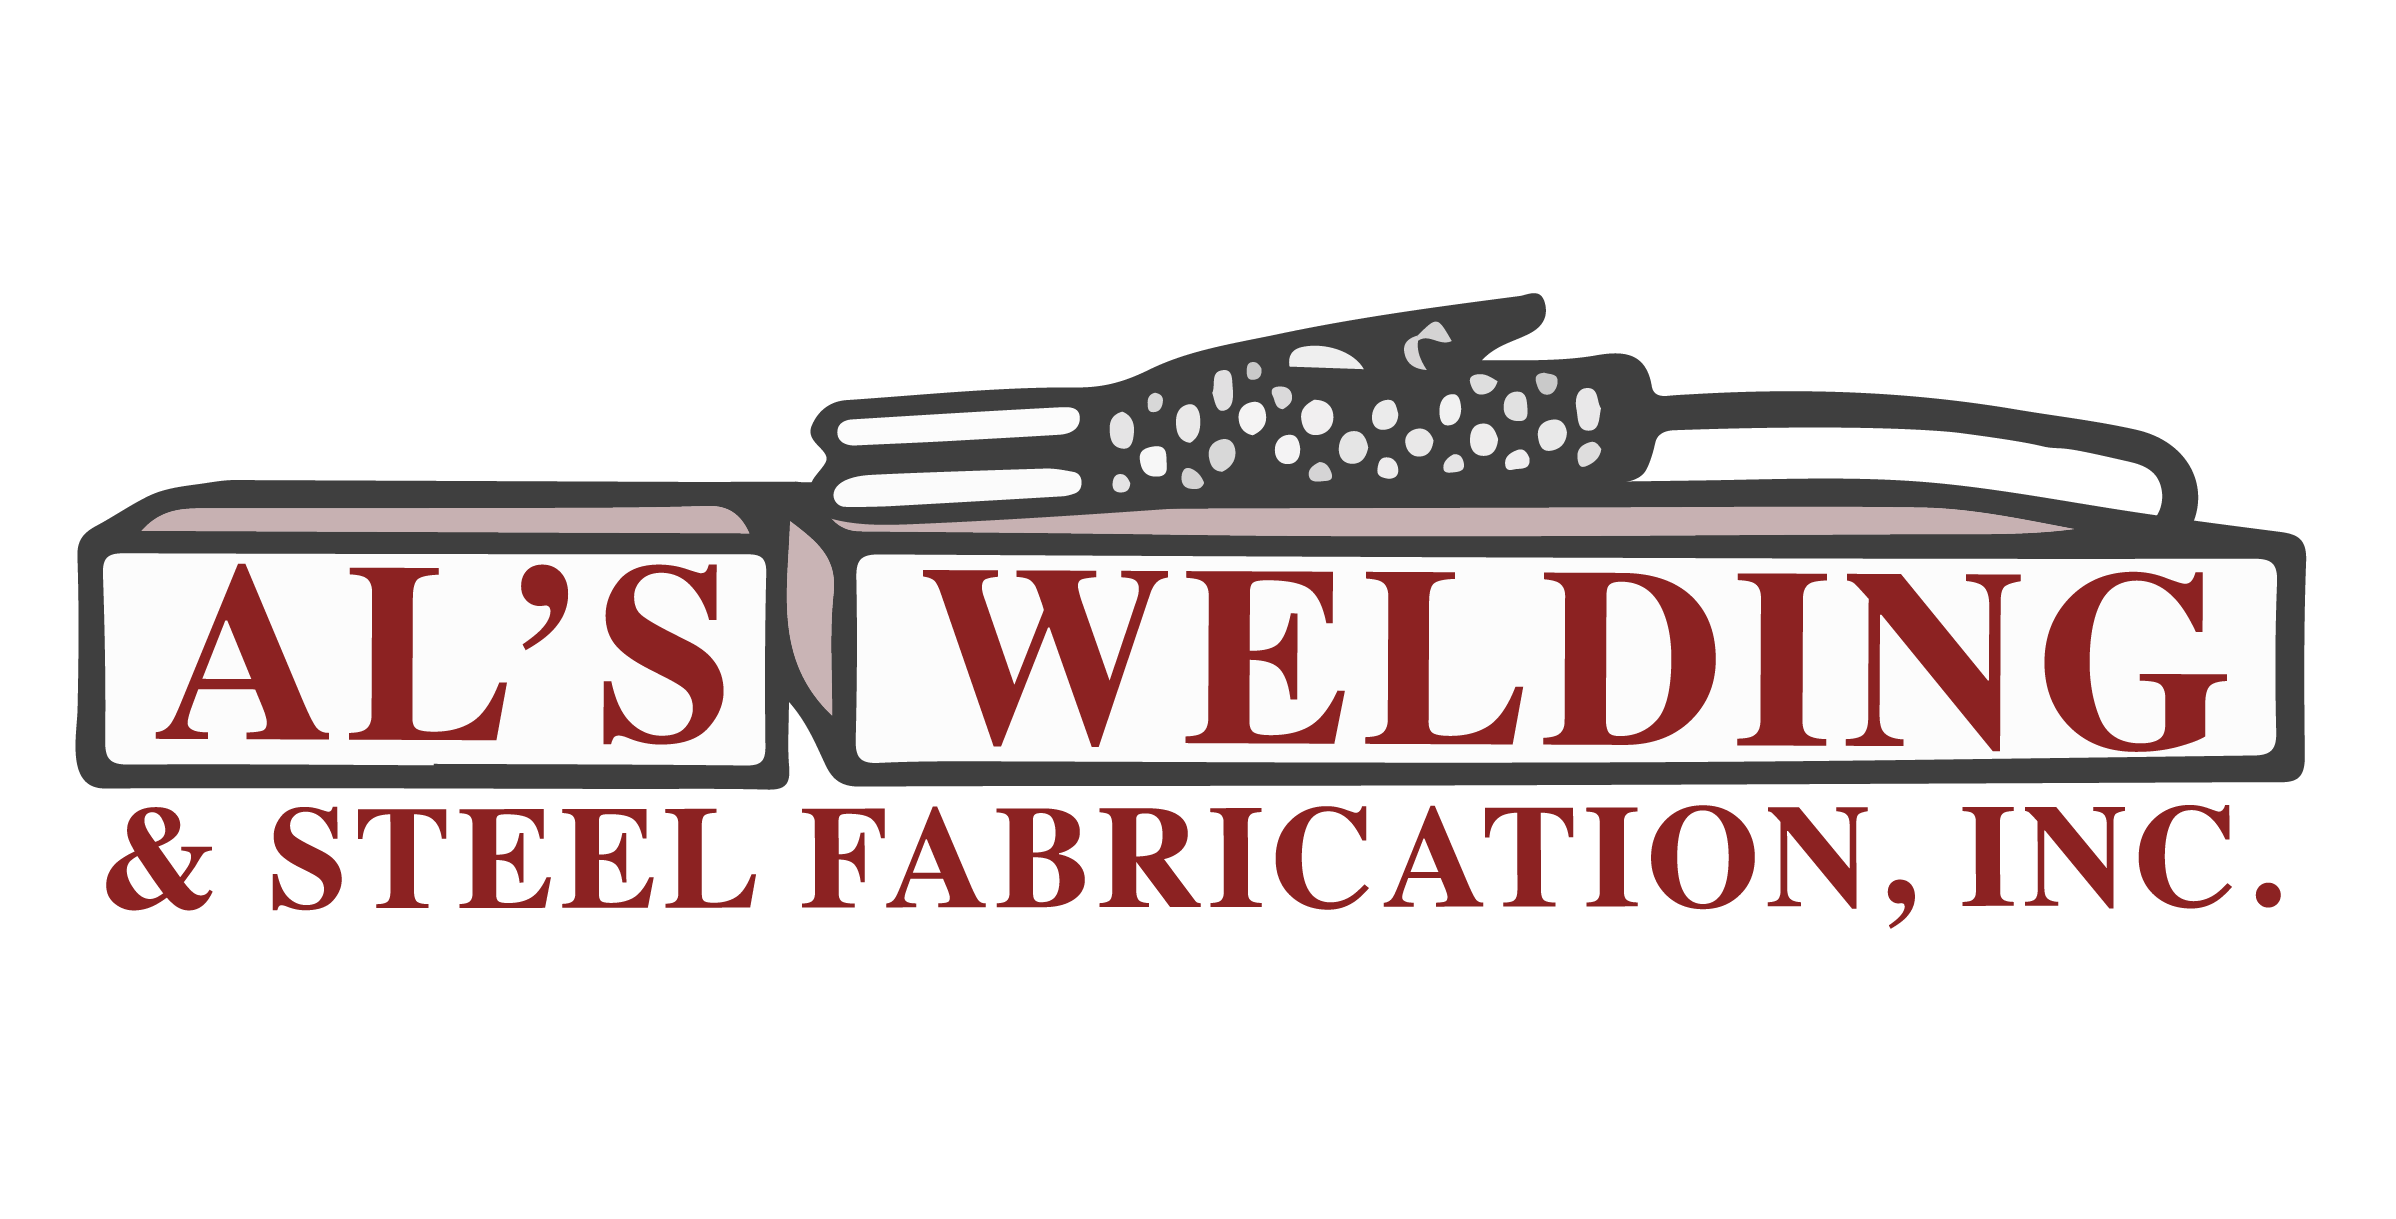 Al's Welding & Steel Fabrication, Inc.